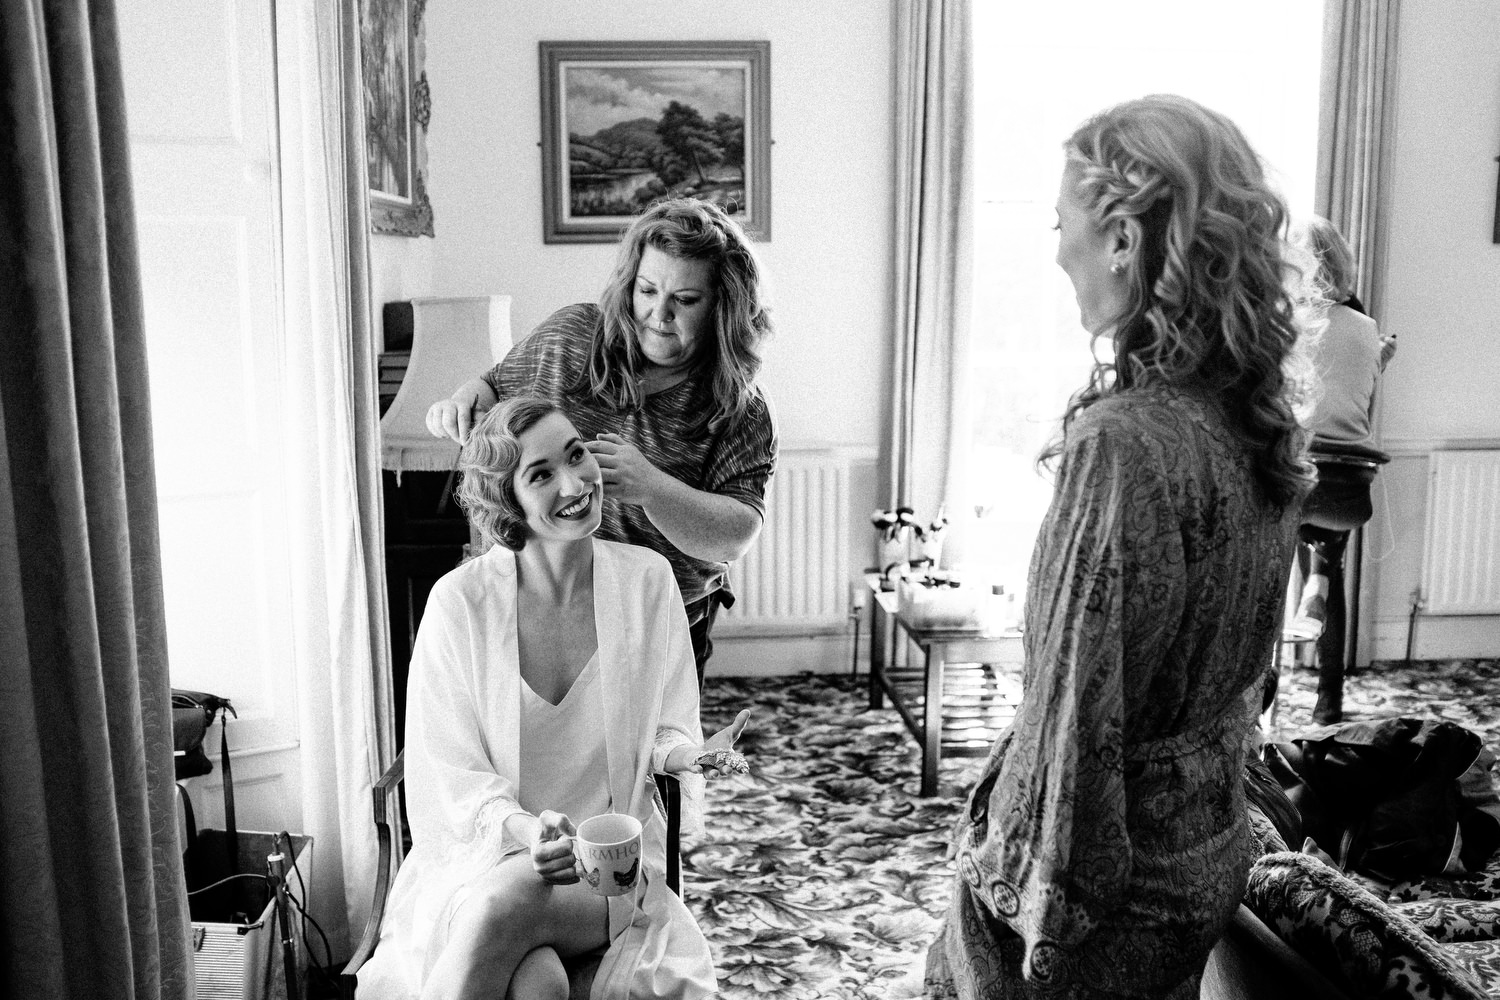 000000000000000000000051_bride_style_preparation_vintage_Hair_dress_photography_david_mcclelland_ireland_makeup_castle_hollywood_kinnity_wedding_photographer_fujifilm